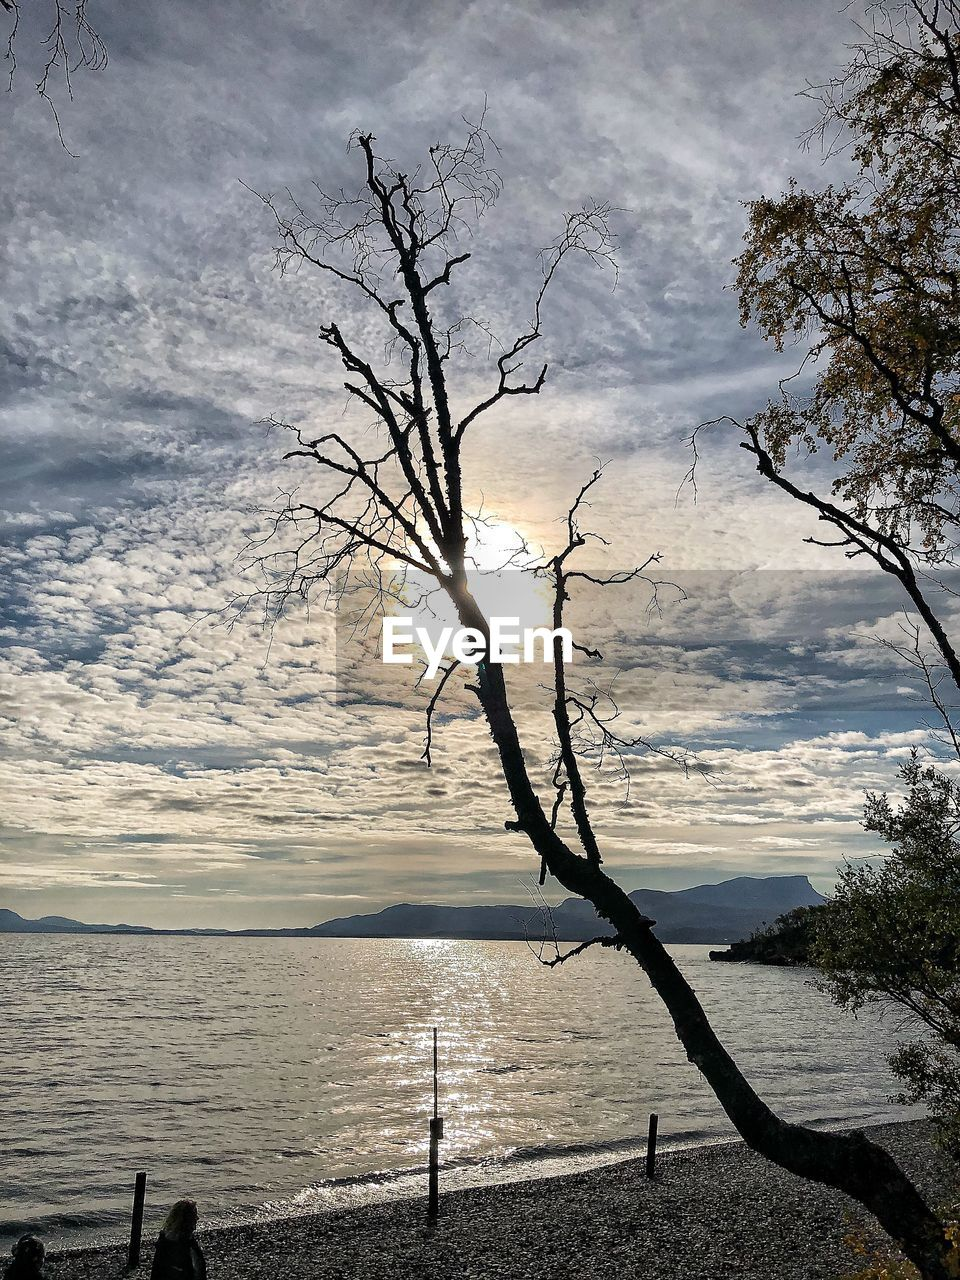 water, sky, cloud - sky, tree, sea, beauty in nature, tranquility, scenics - nature, tranquil scene, nature, plant, bare tree, land, no people, beach, branch, day, outdoors, horizon, horizon over water